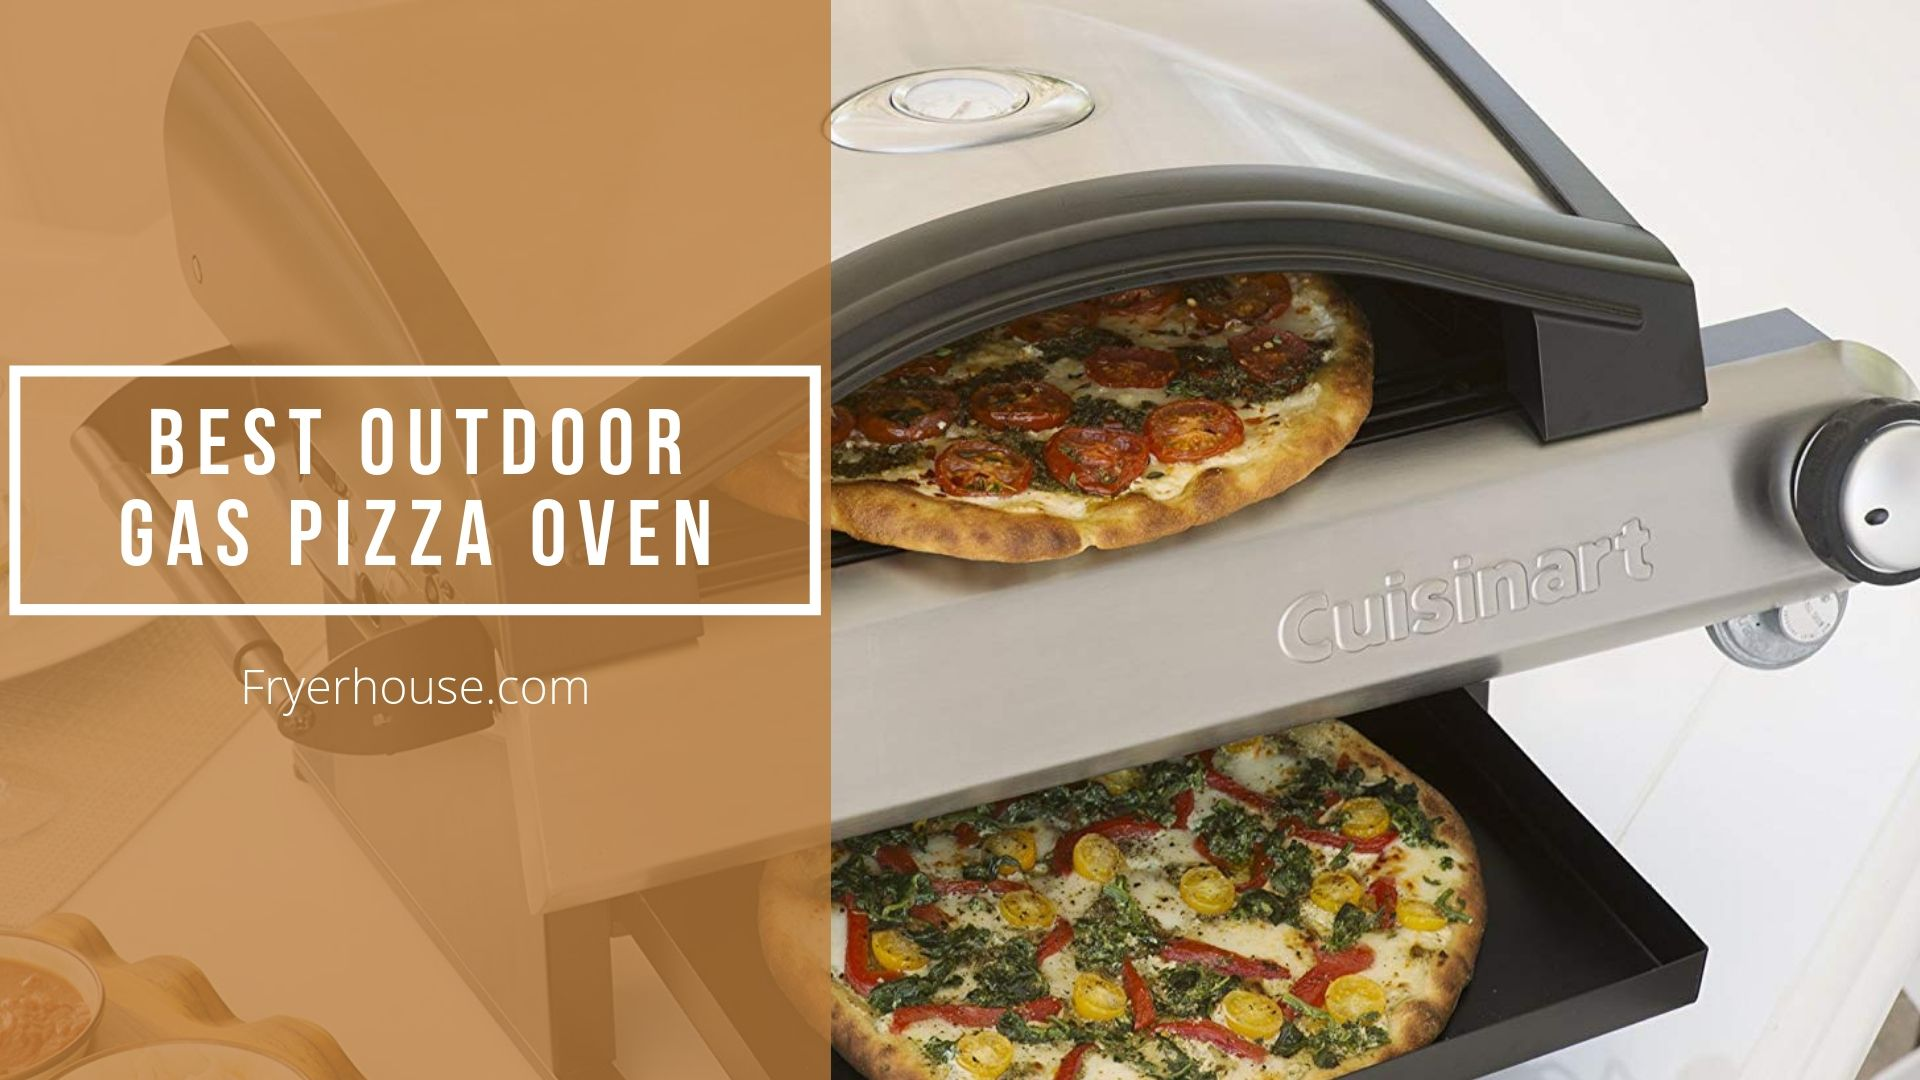 Best Outdoor Gas Pizza Oven